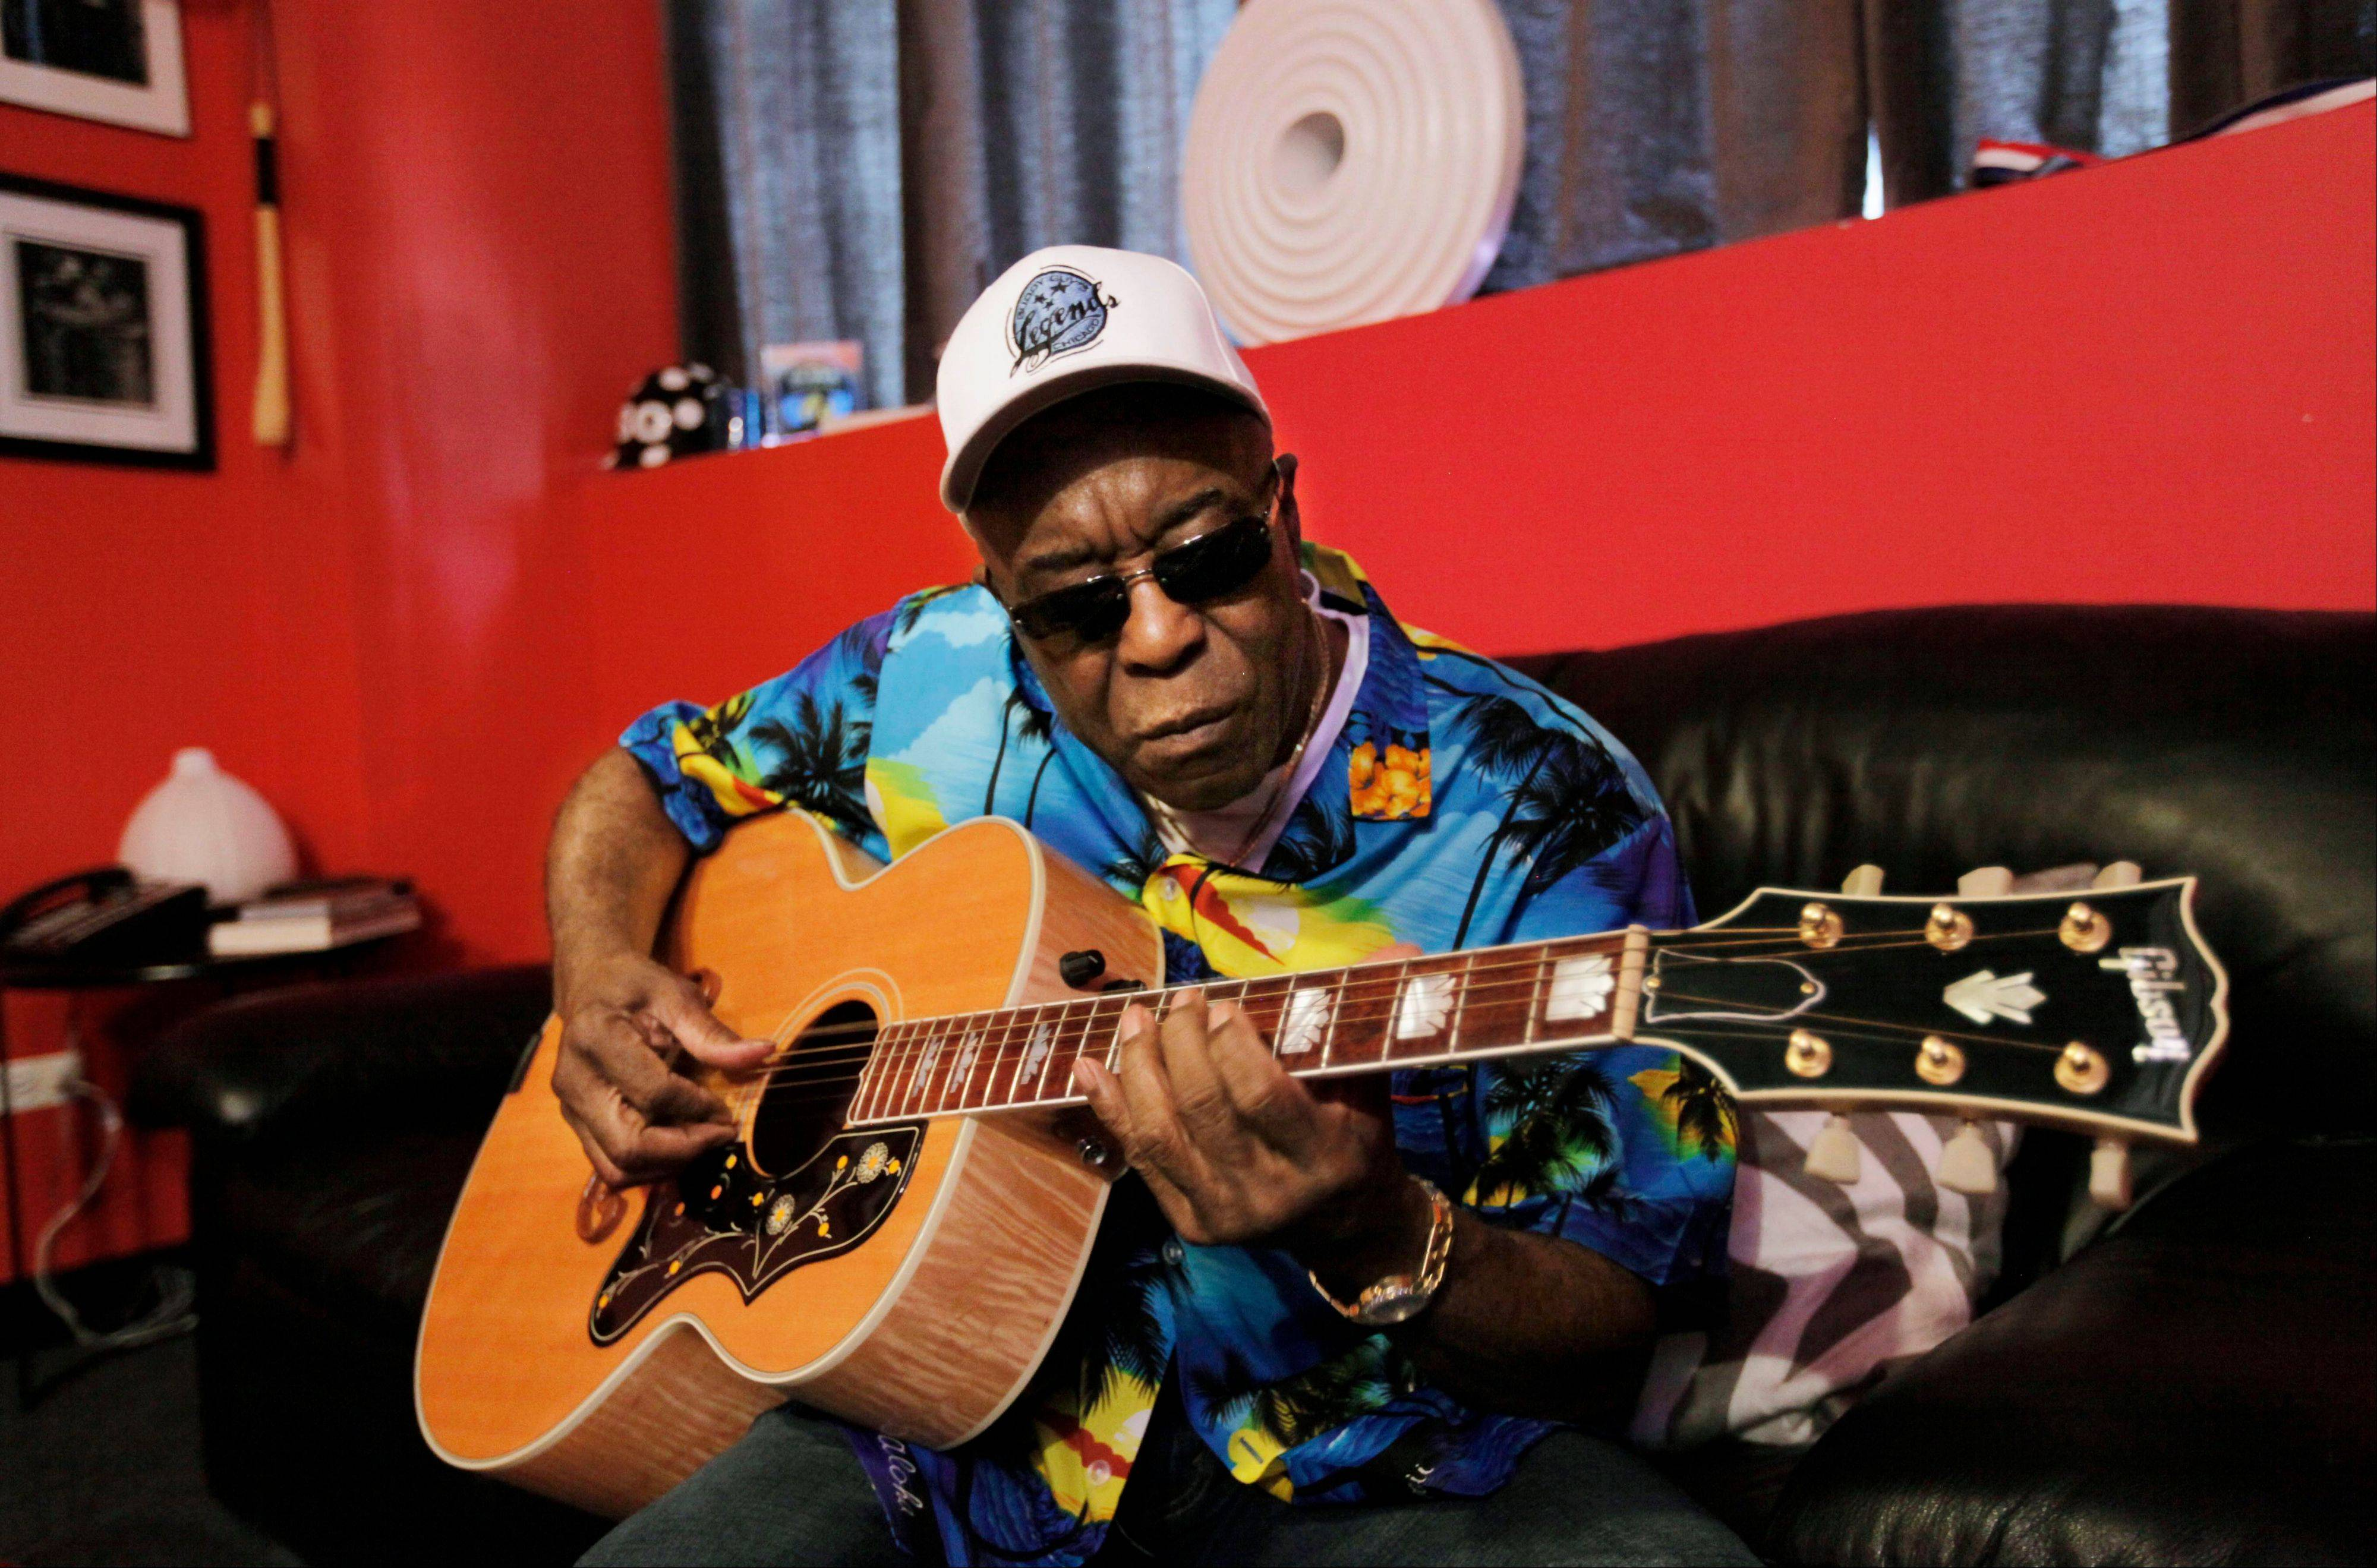 Musician Buddy Guy, 76, still tours, playing internationally and as many as 16 shows a month.